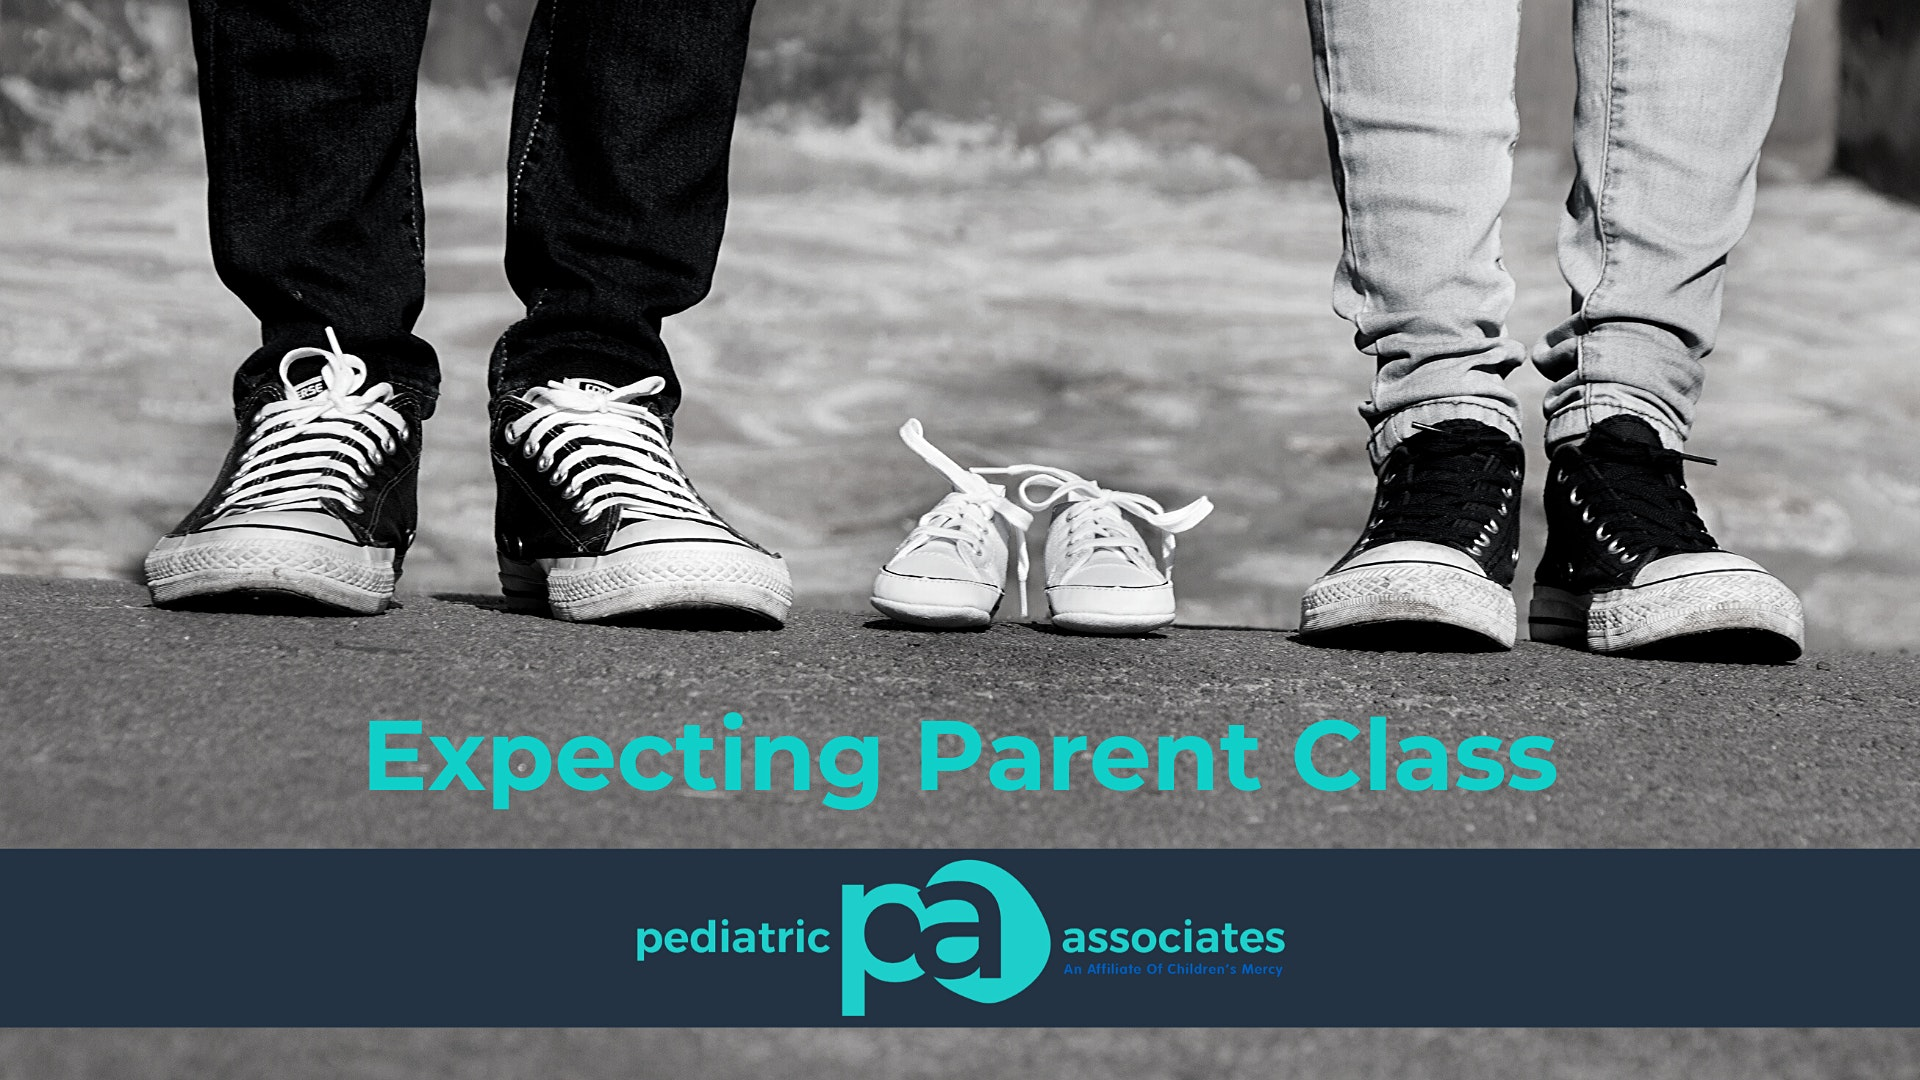 Expecting Parent Class with Dr. Ragsdale at the Plaza